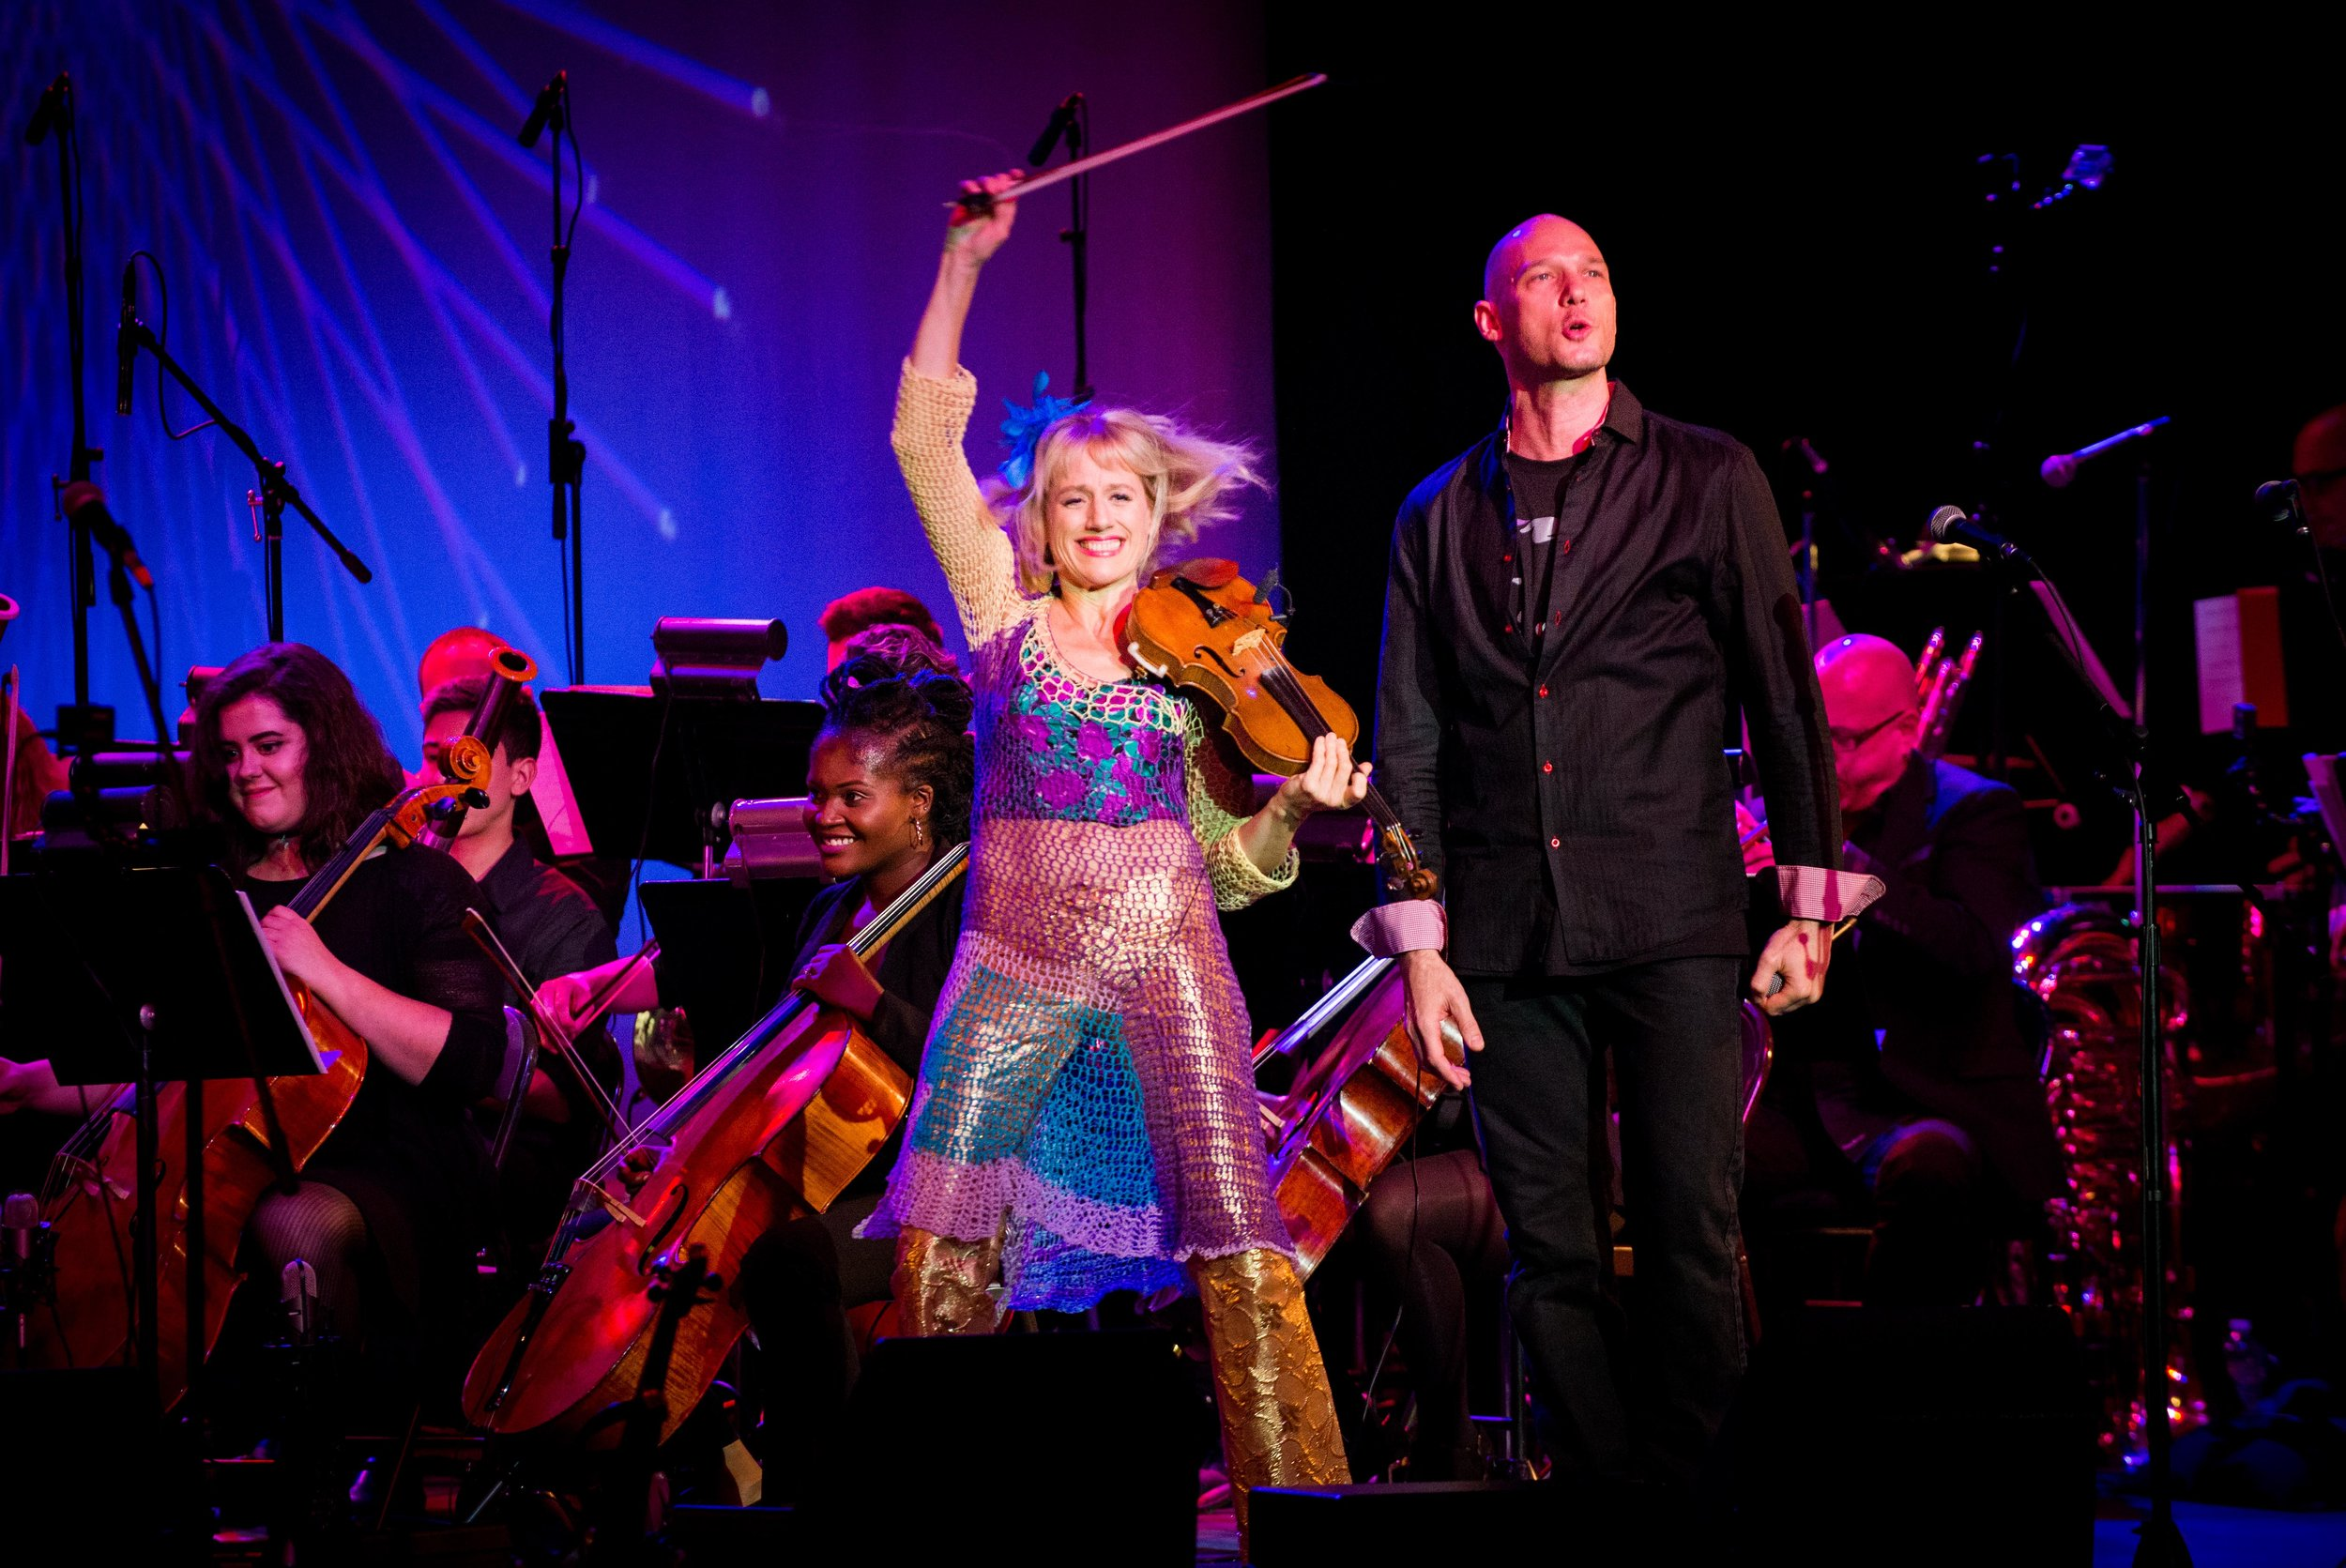 Featuring Michael Feigenbaum (beat boxing) and Patrice Jackson-Tilghman (lead cellist), who rocked the house